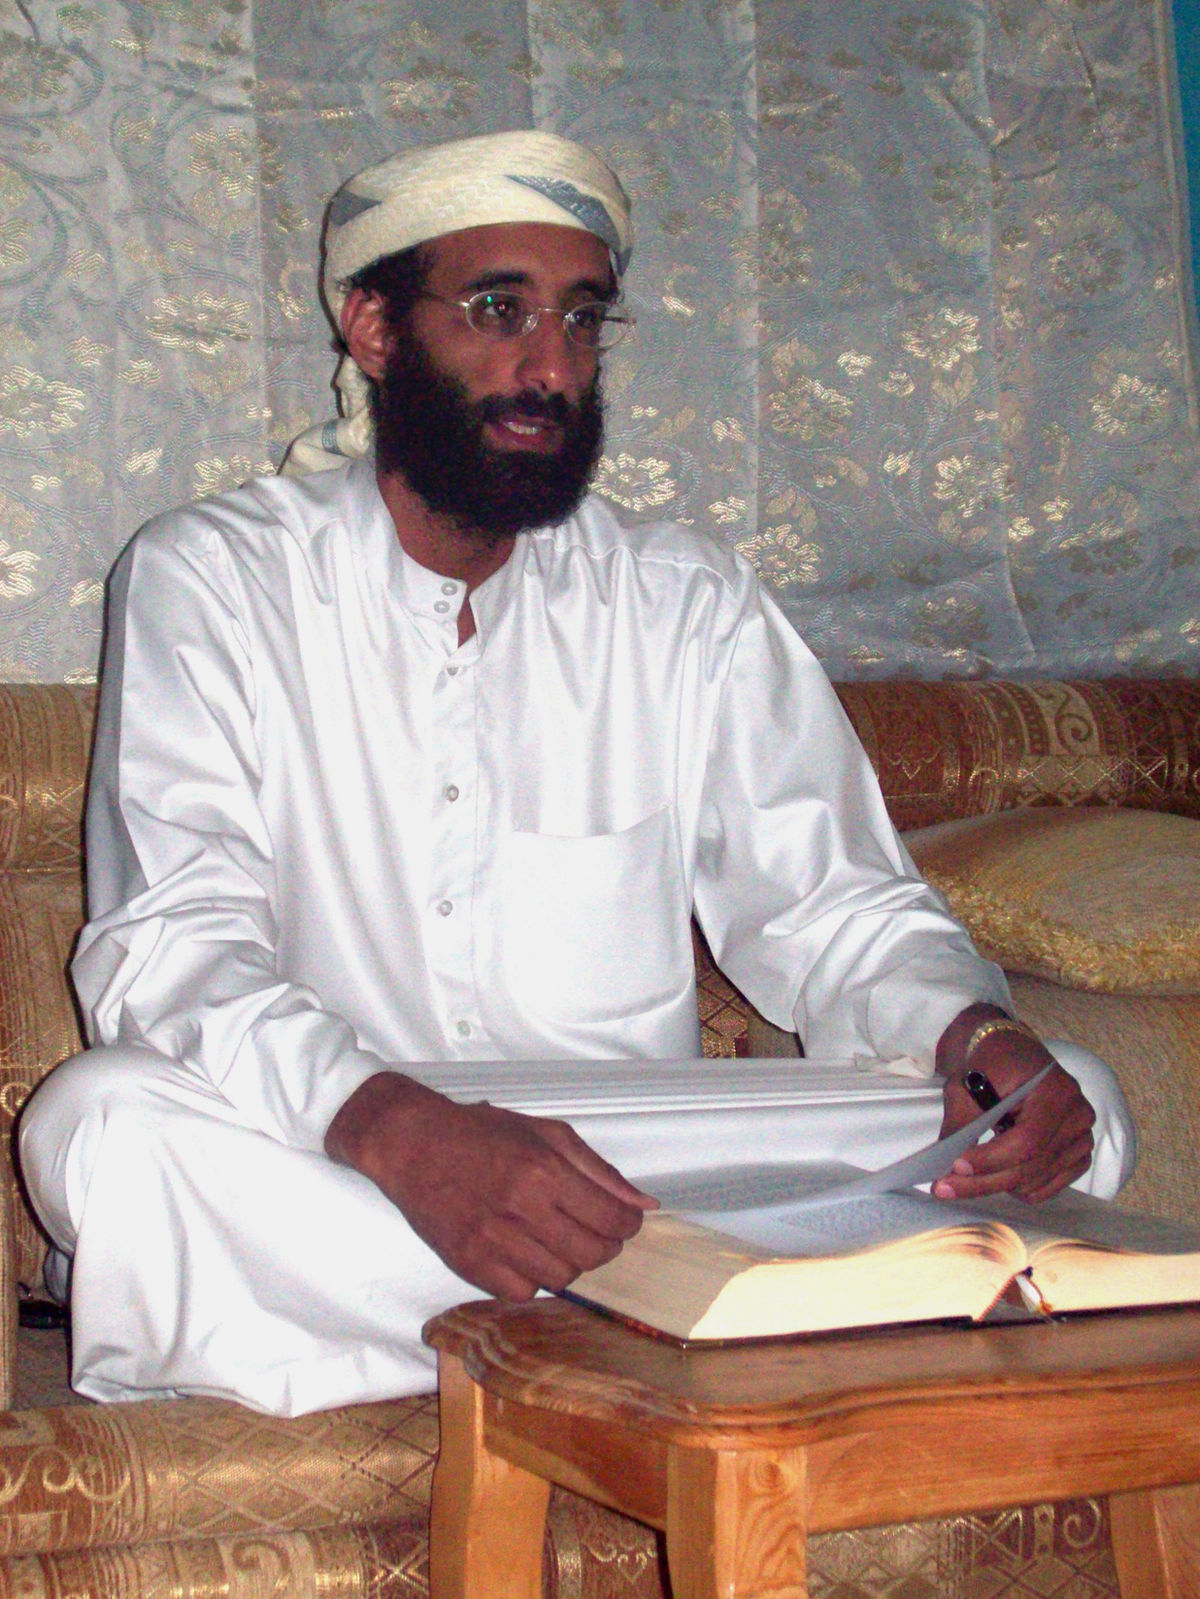 Al-Qaeda propagandist Anwar al-Awlaki. Photo courtesy: Wiki